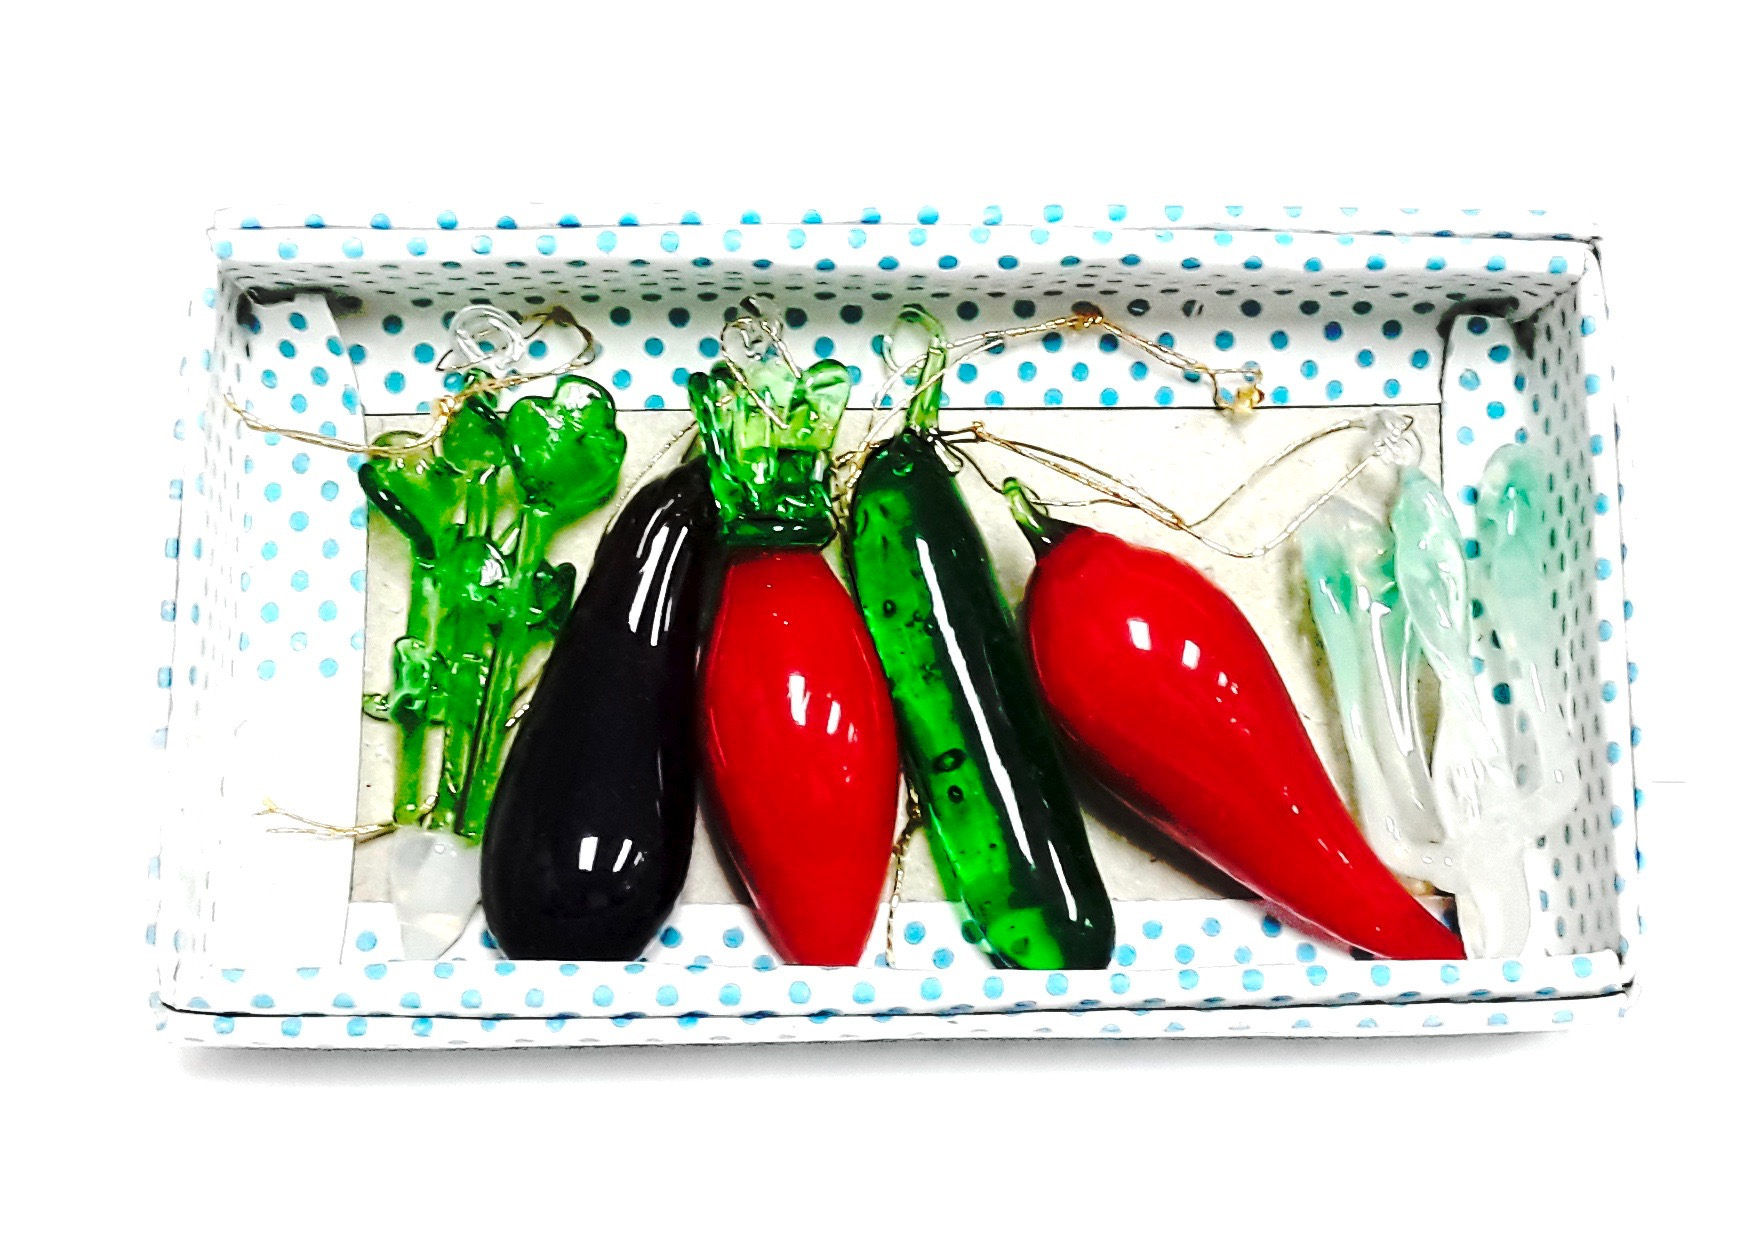 Asst Glass Vegetable 6pcs/set